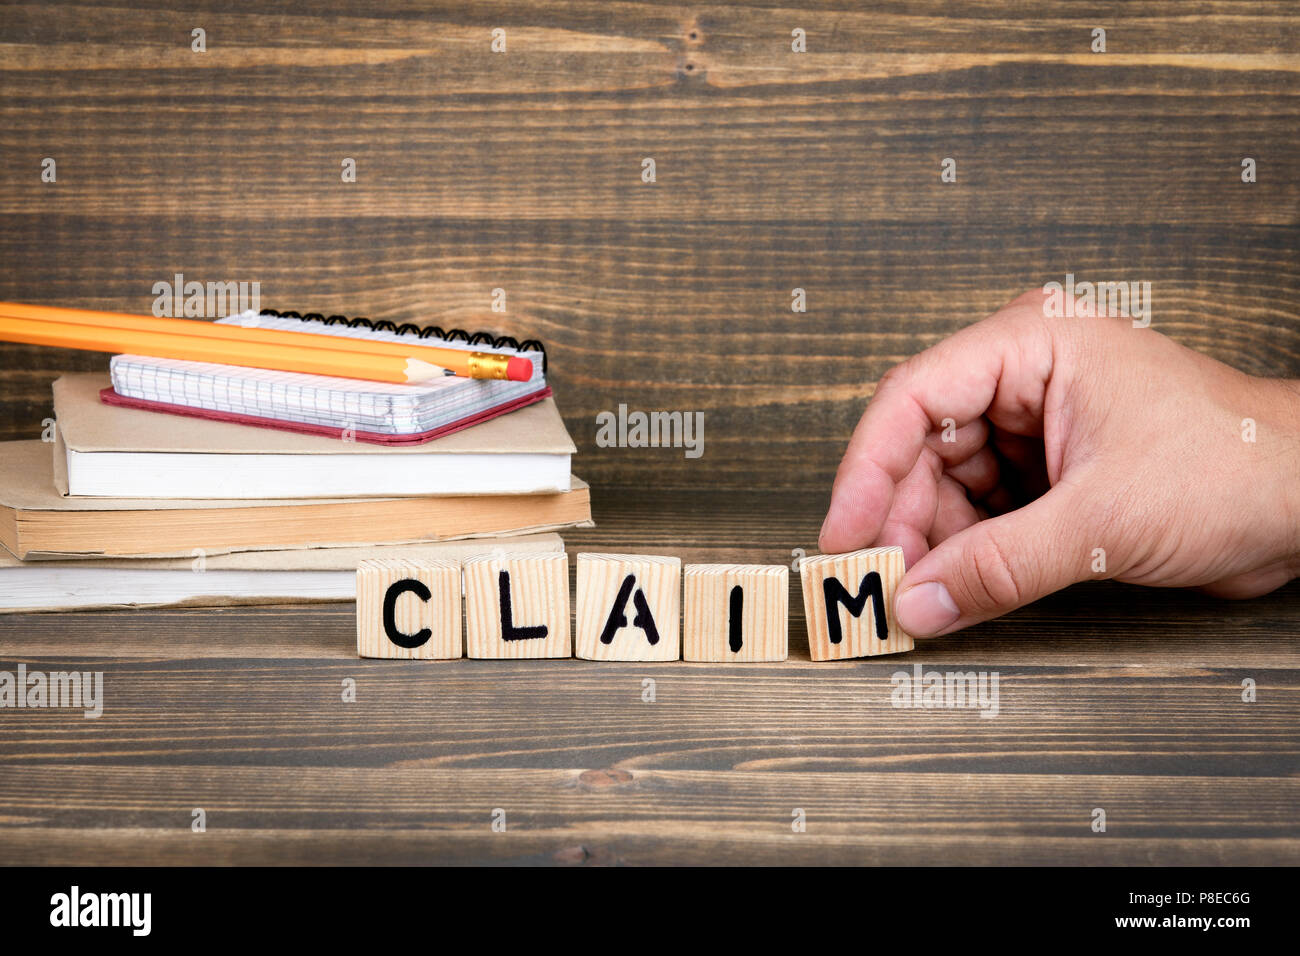 Claim. Wooden letters on the office desk - Stock Image